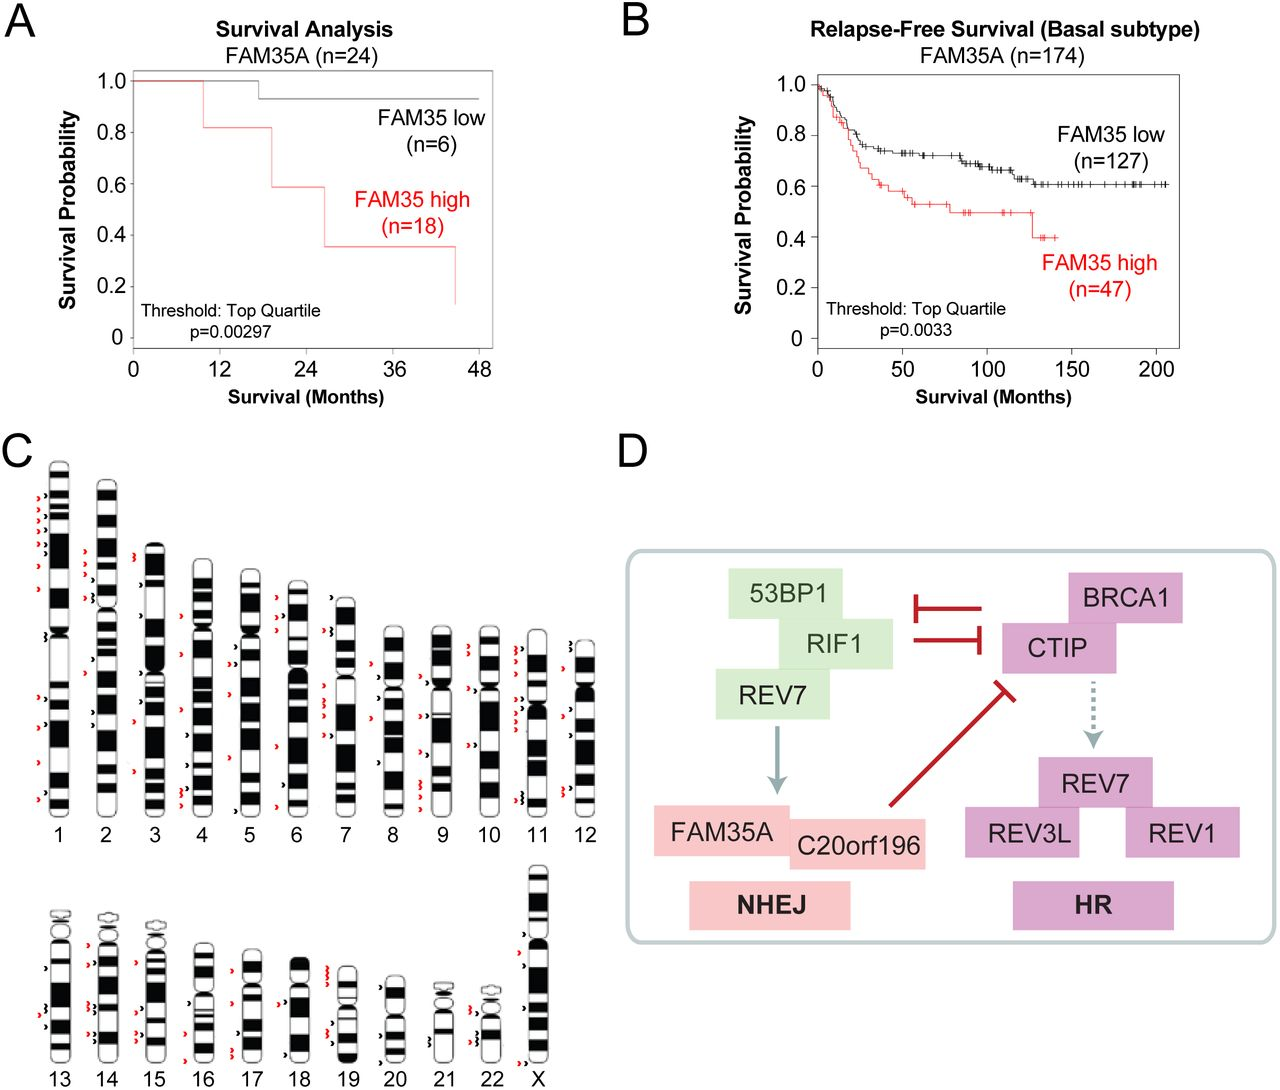 FAM35A co-operates with REV7 to coordinate DNA double-strand break